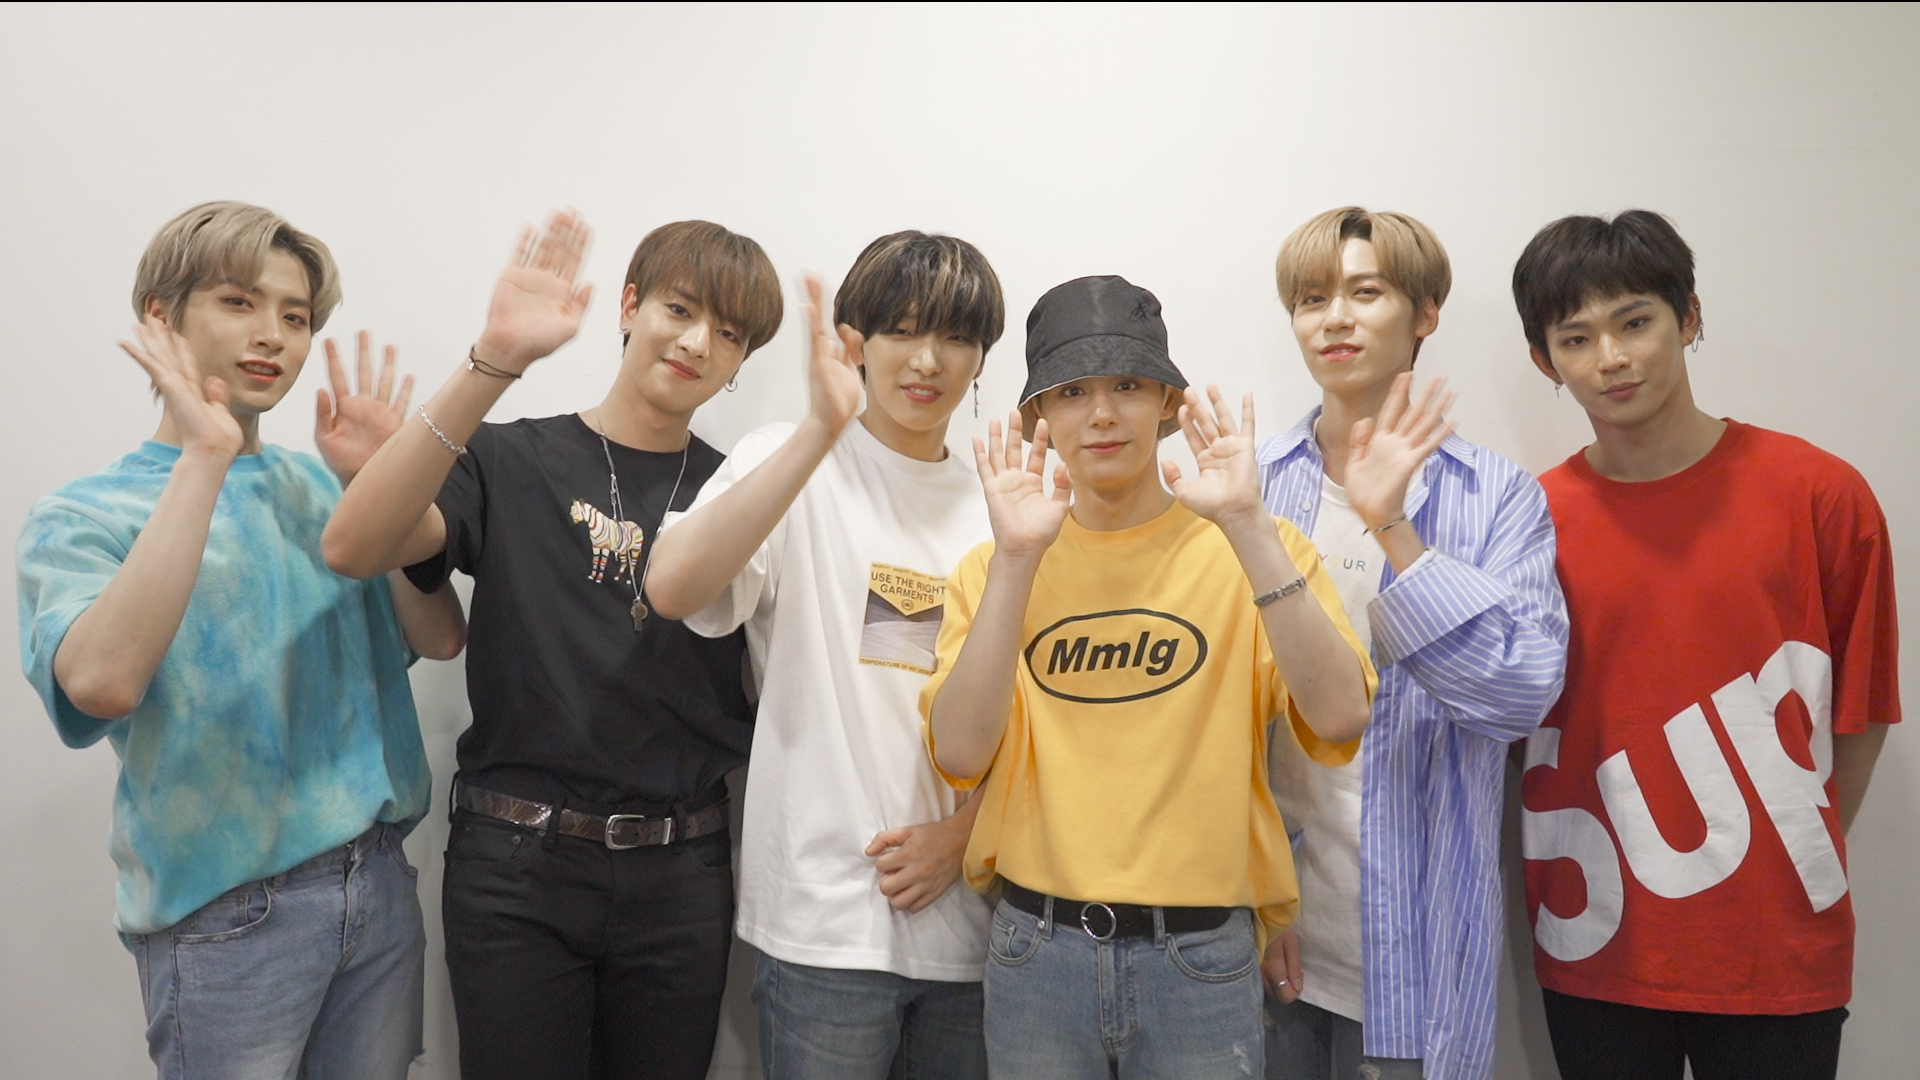 [FANSHIP] ONEUS OFFICIAL FANCLUB 'TO MOON' 1기 모집 안내